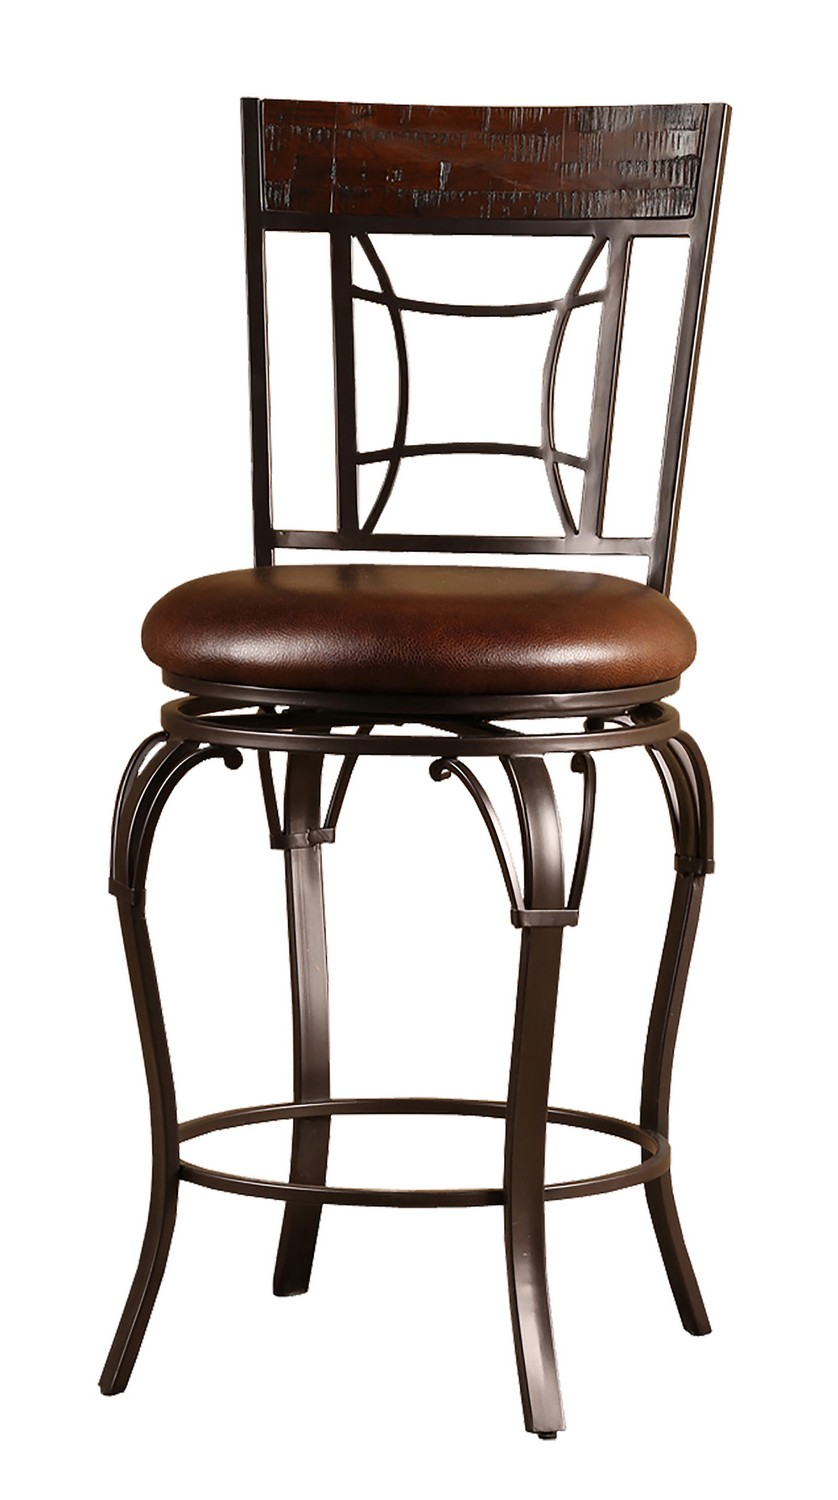 Hillsdale Granada Swivel Counter Stool - Dark Chestnut